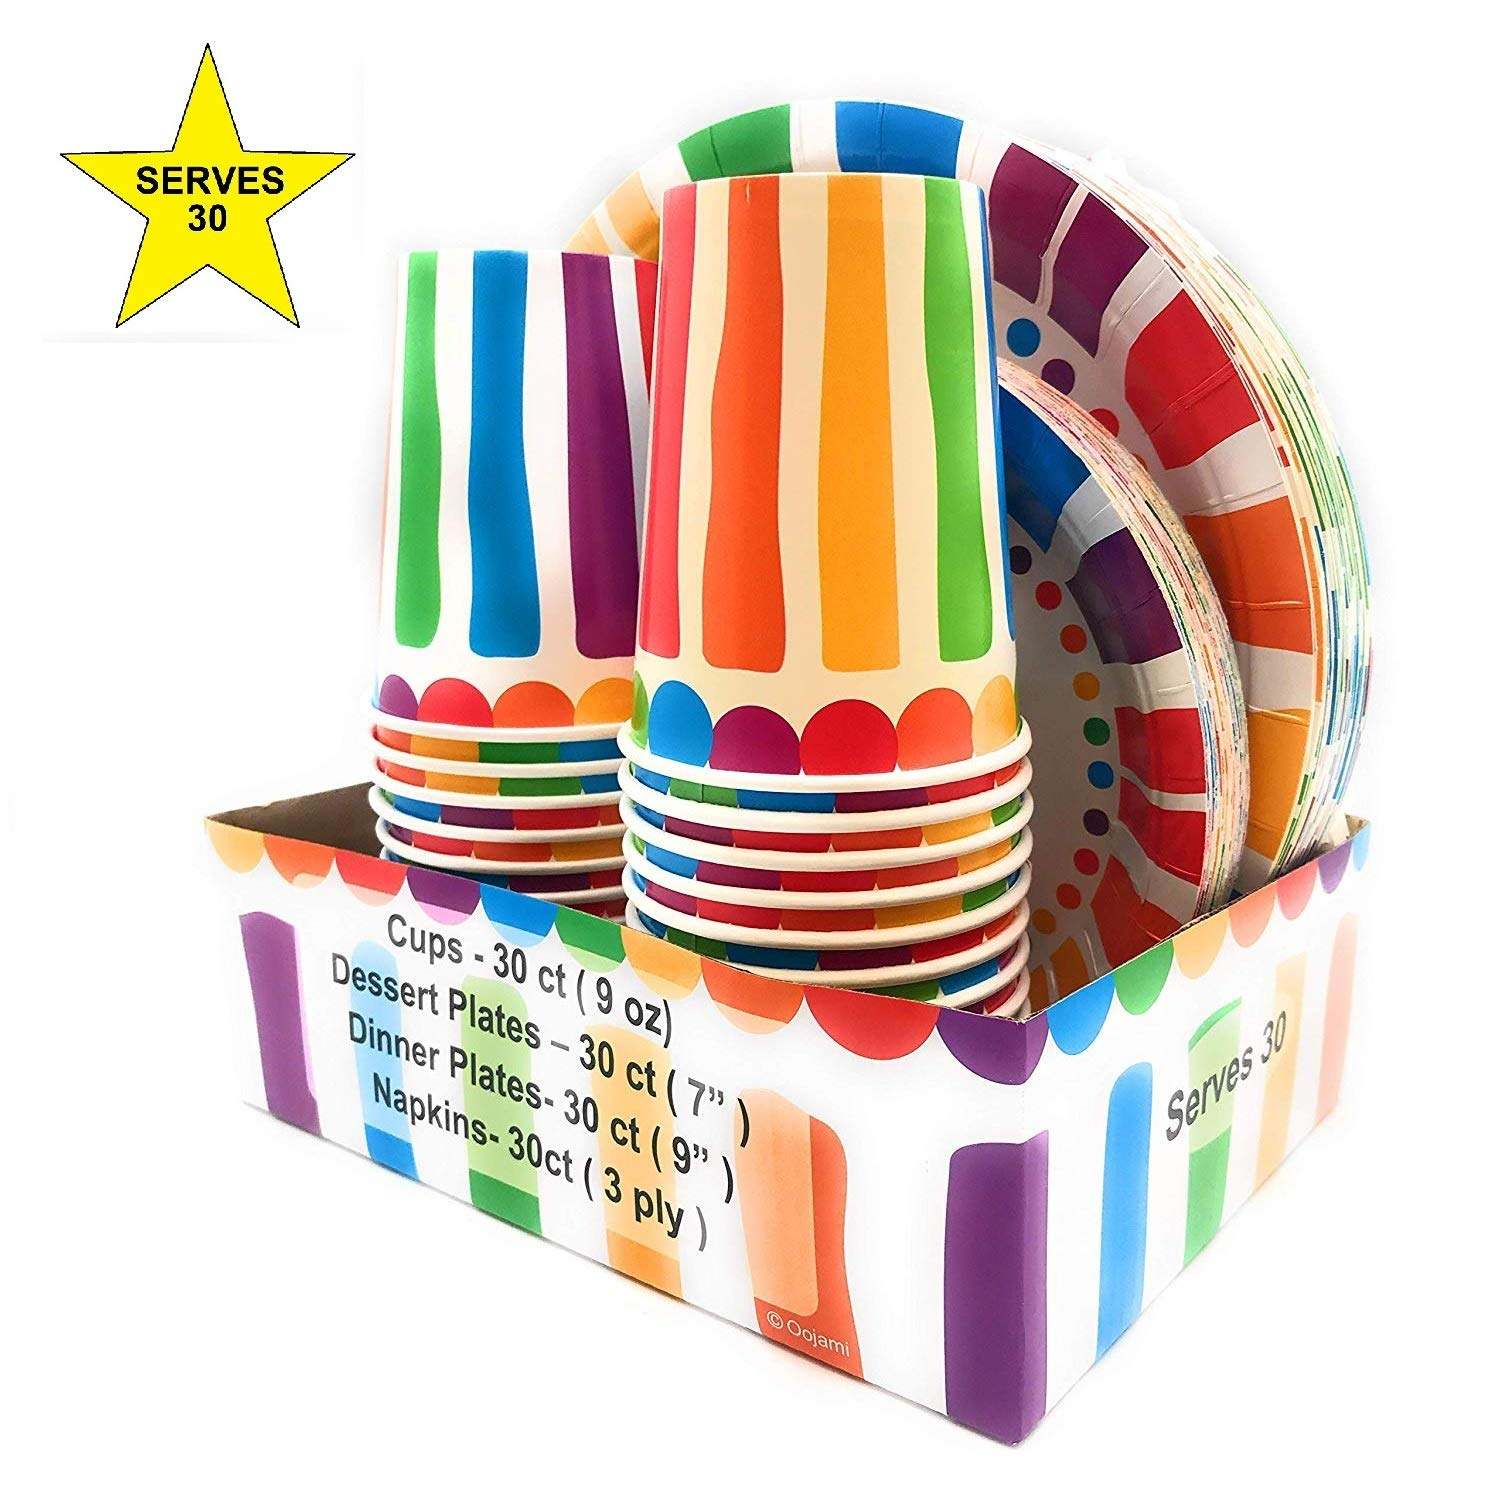 Serves 30 Rainbow Party Pack | 30 cups 9 oz | 30 Dessert Plates 7'' | 30 Dinner Plates 9'' | 30 Napkins | Serves 30